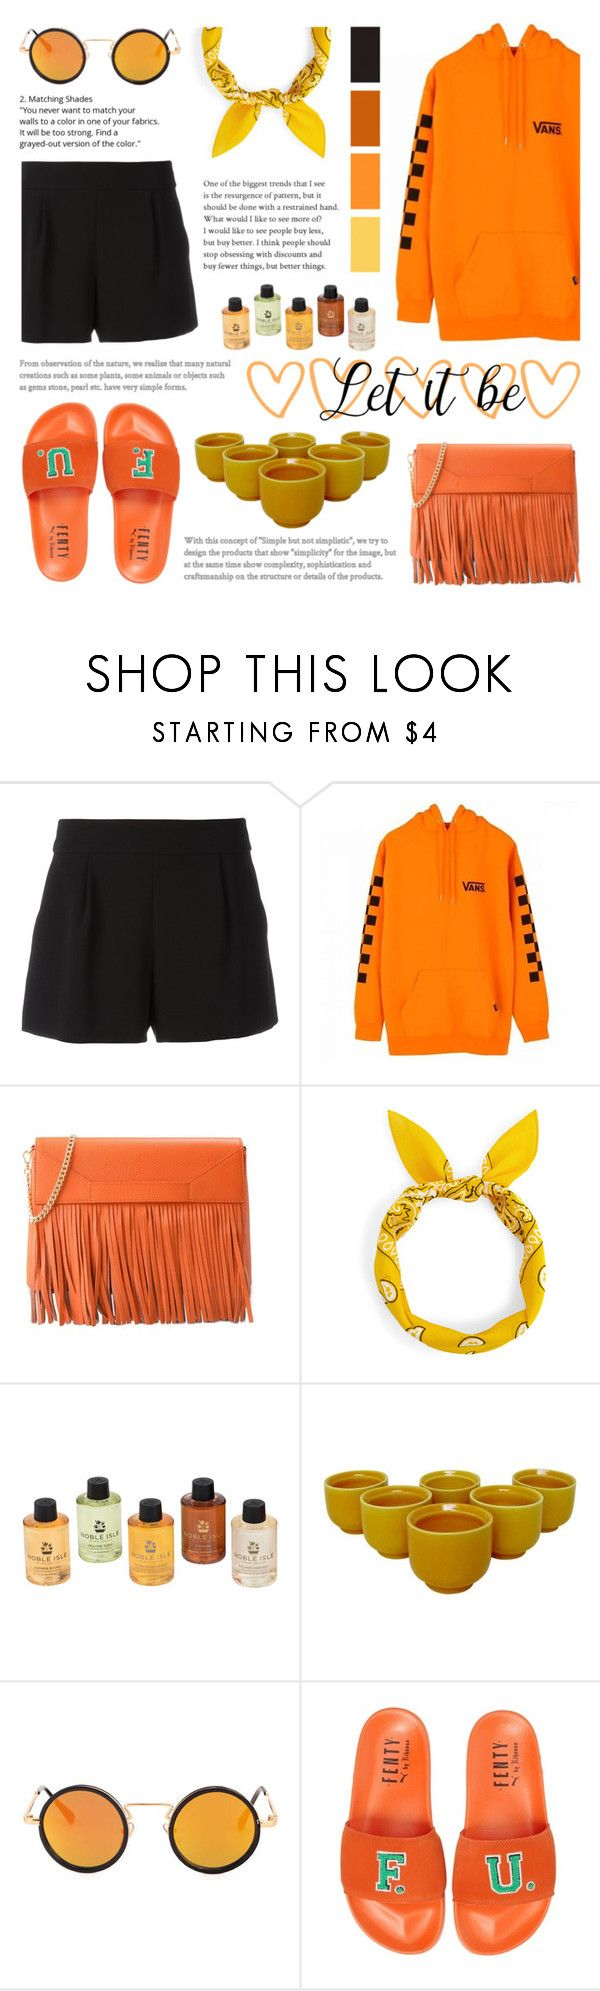 """""""Fall Fresh Look"""" by saviraauliap ❤ liked on Polyvore featuring Boutique Moschino, Vans, Carnill & Company, Rosenthal, Puma, yellow, orange, vans, oversized and chill"""